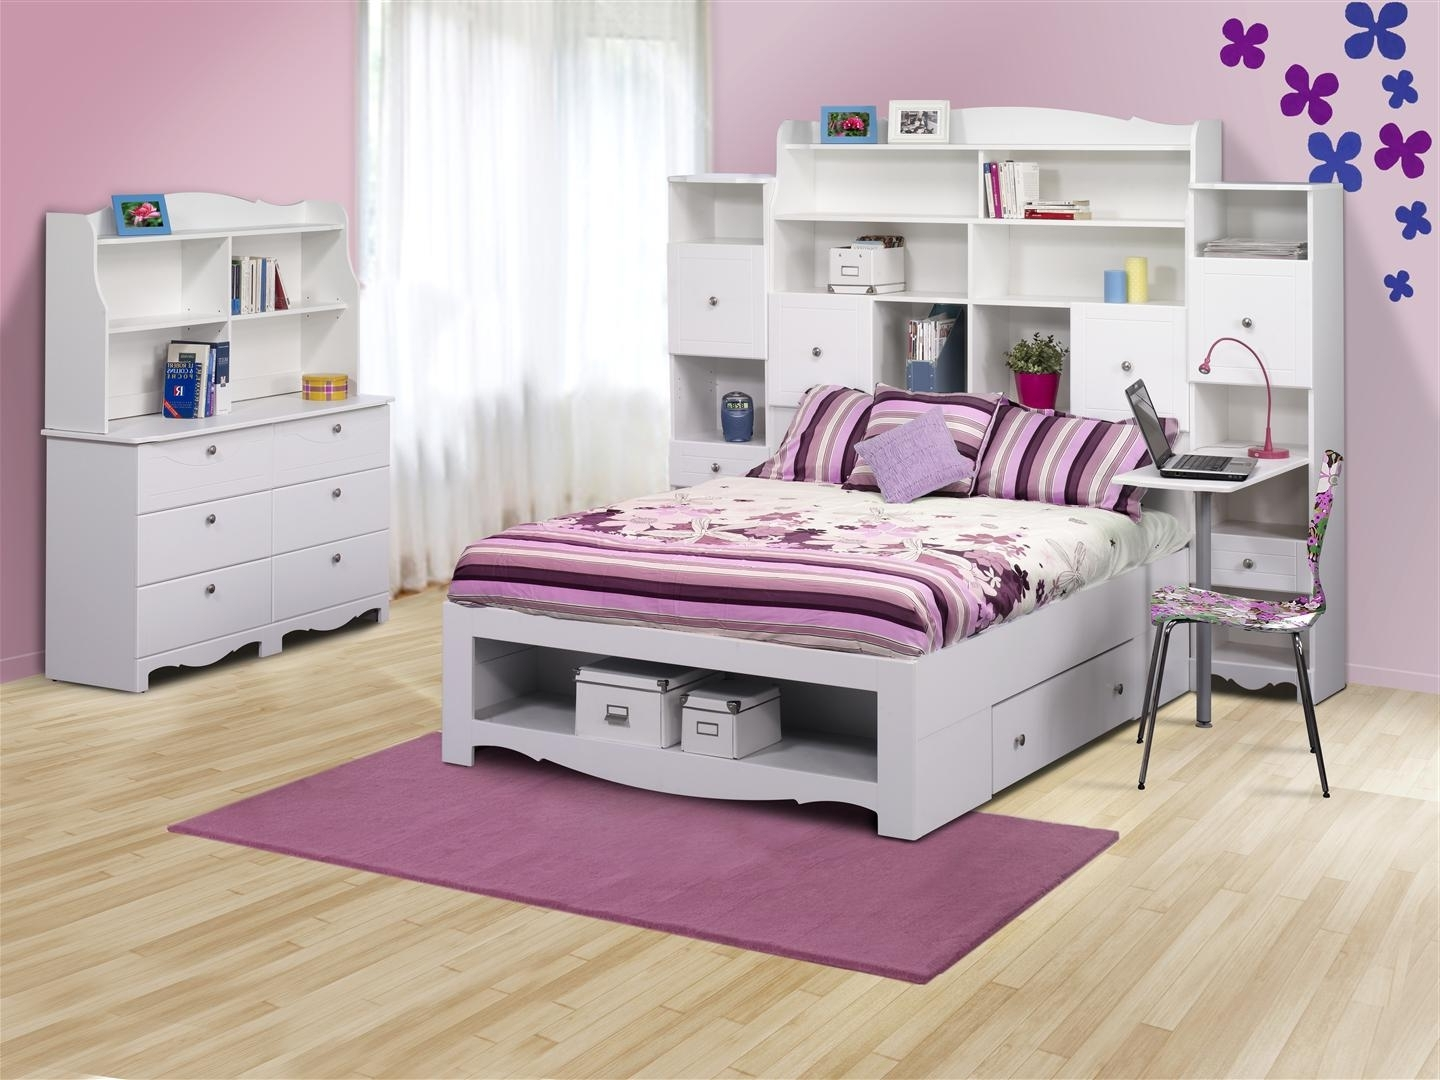 Full Size Storage Bed With Bookcases Headboard In Popular Nice Full Size Storage Bed With Bookcase Headboard – Home (View 7 of 15)